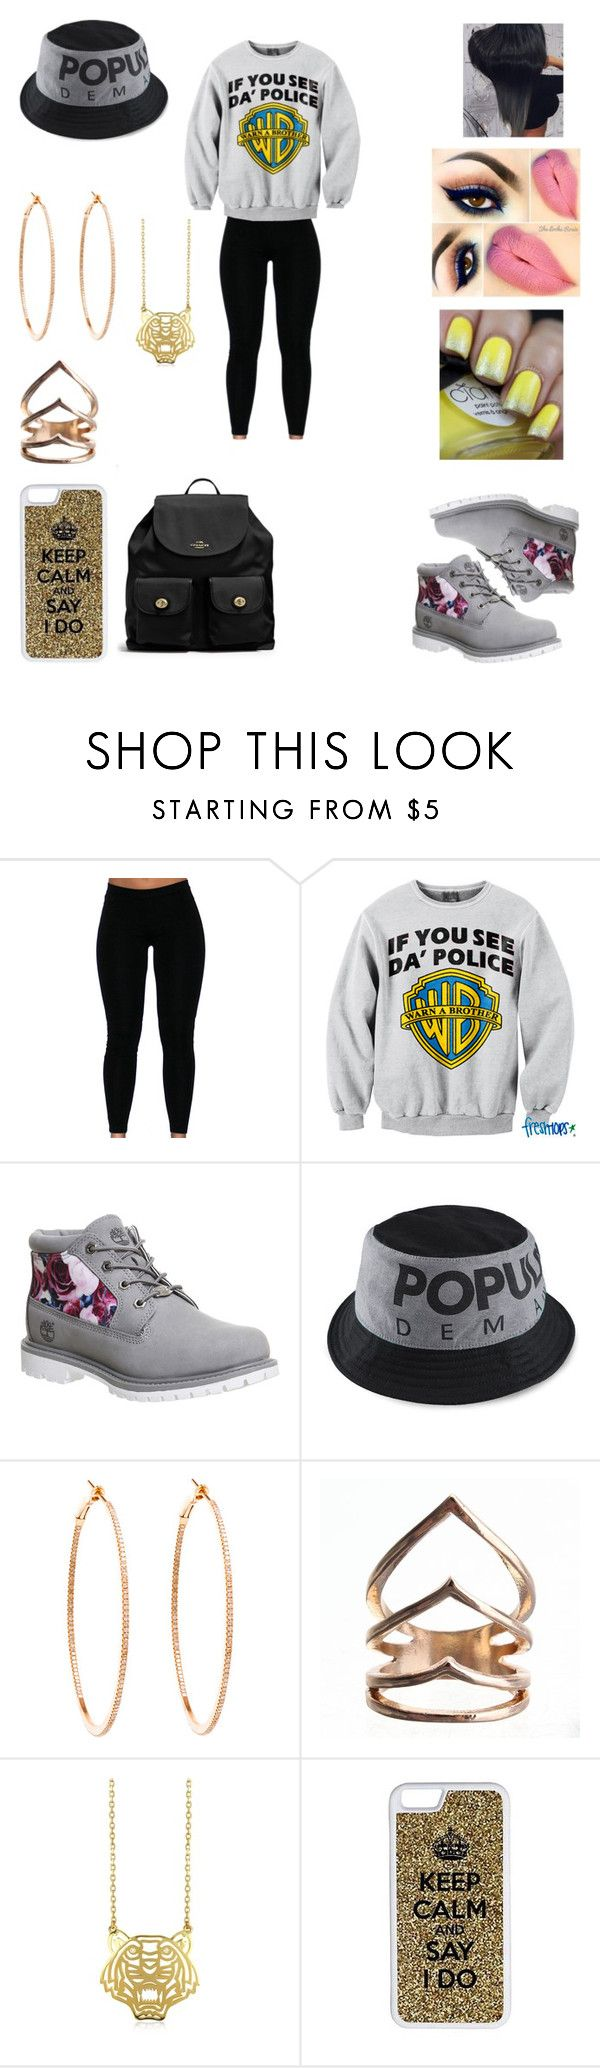 """Untitled #61"" by cristrotter ❤ liked on Polyvore featuring POLICE, Timberland, Rosa de la Cruz, Kenzo, CellPowerCases and Coach"